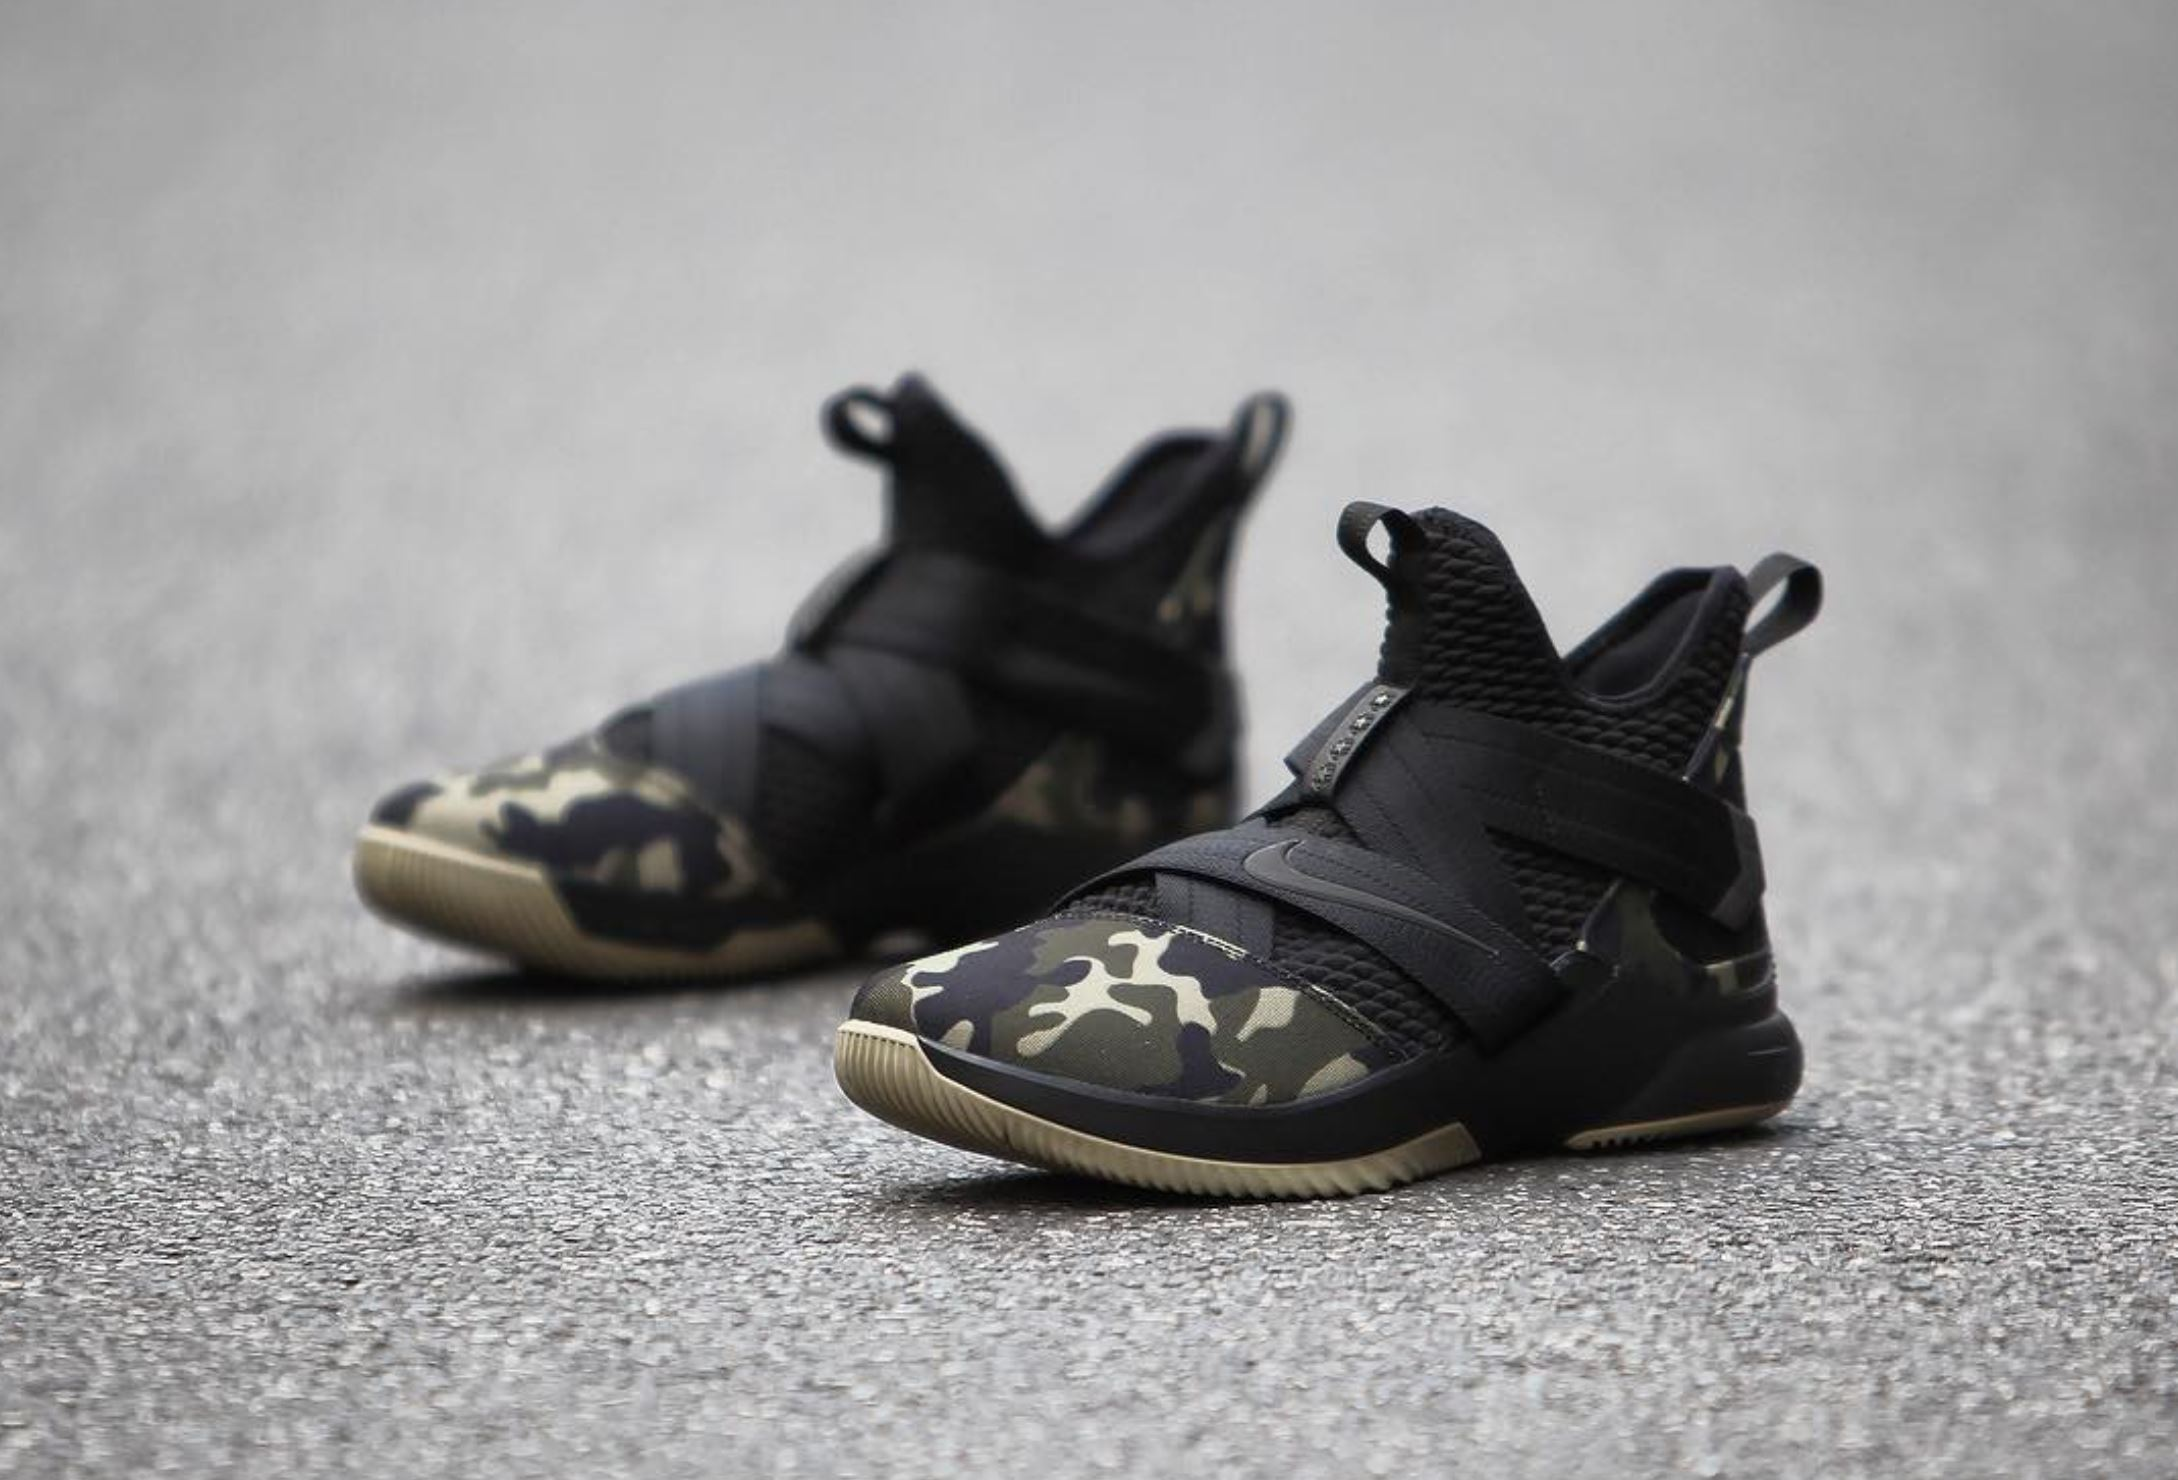 best service 31010 0521a Here's a Detailed Look at the Nike LeBron Soldier 12 'Camo ...